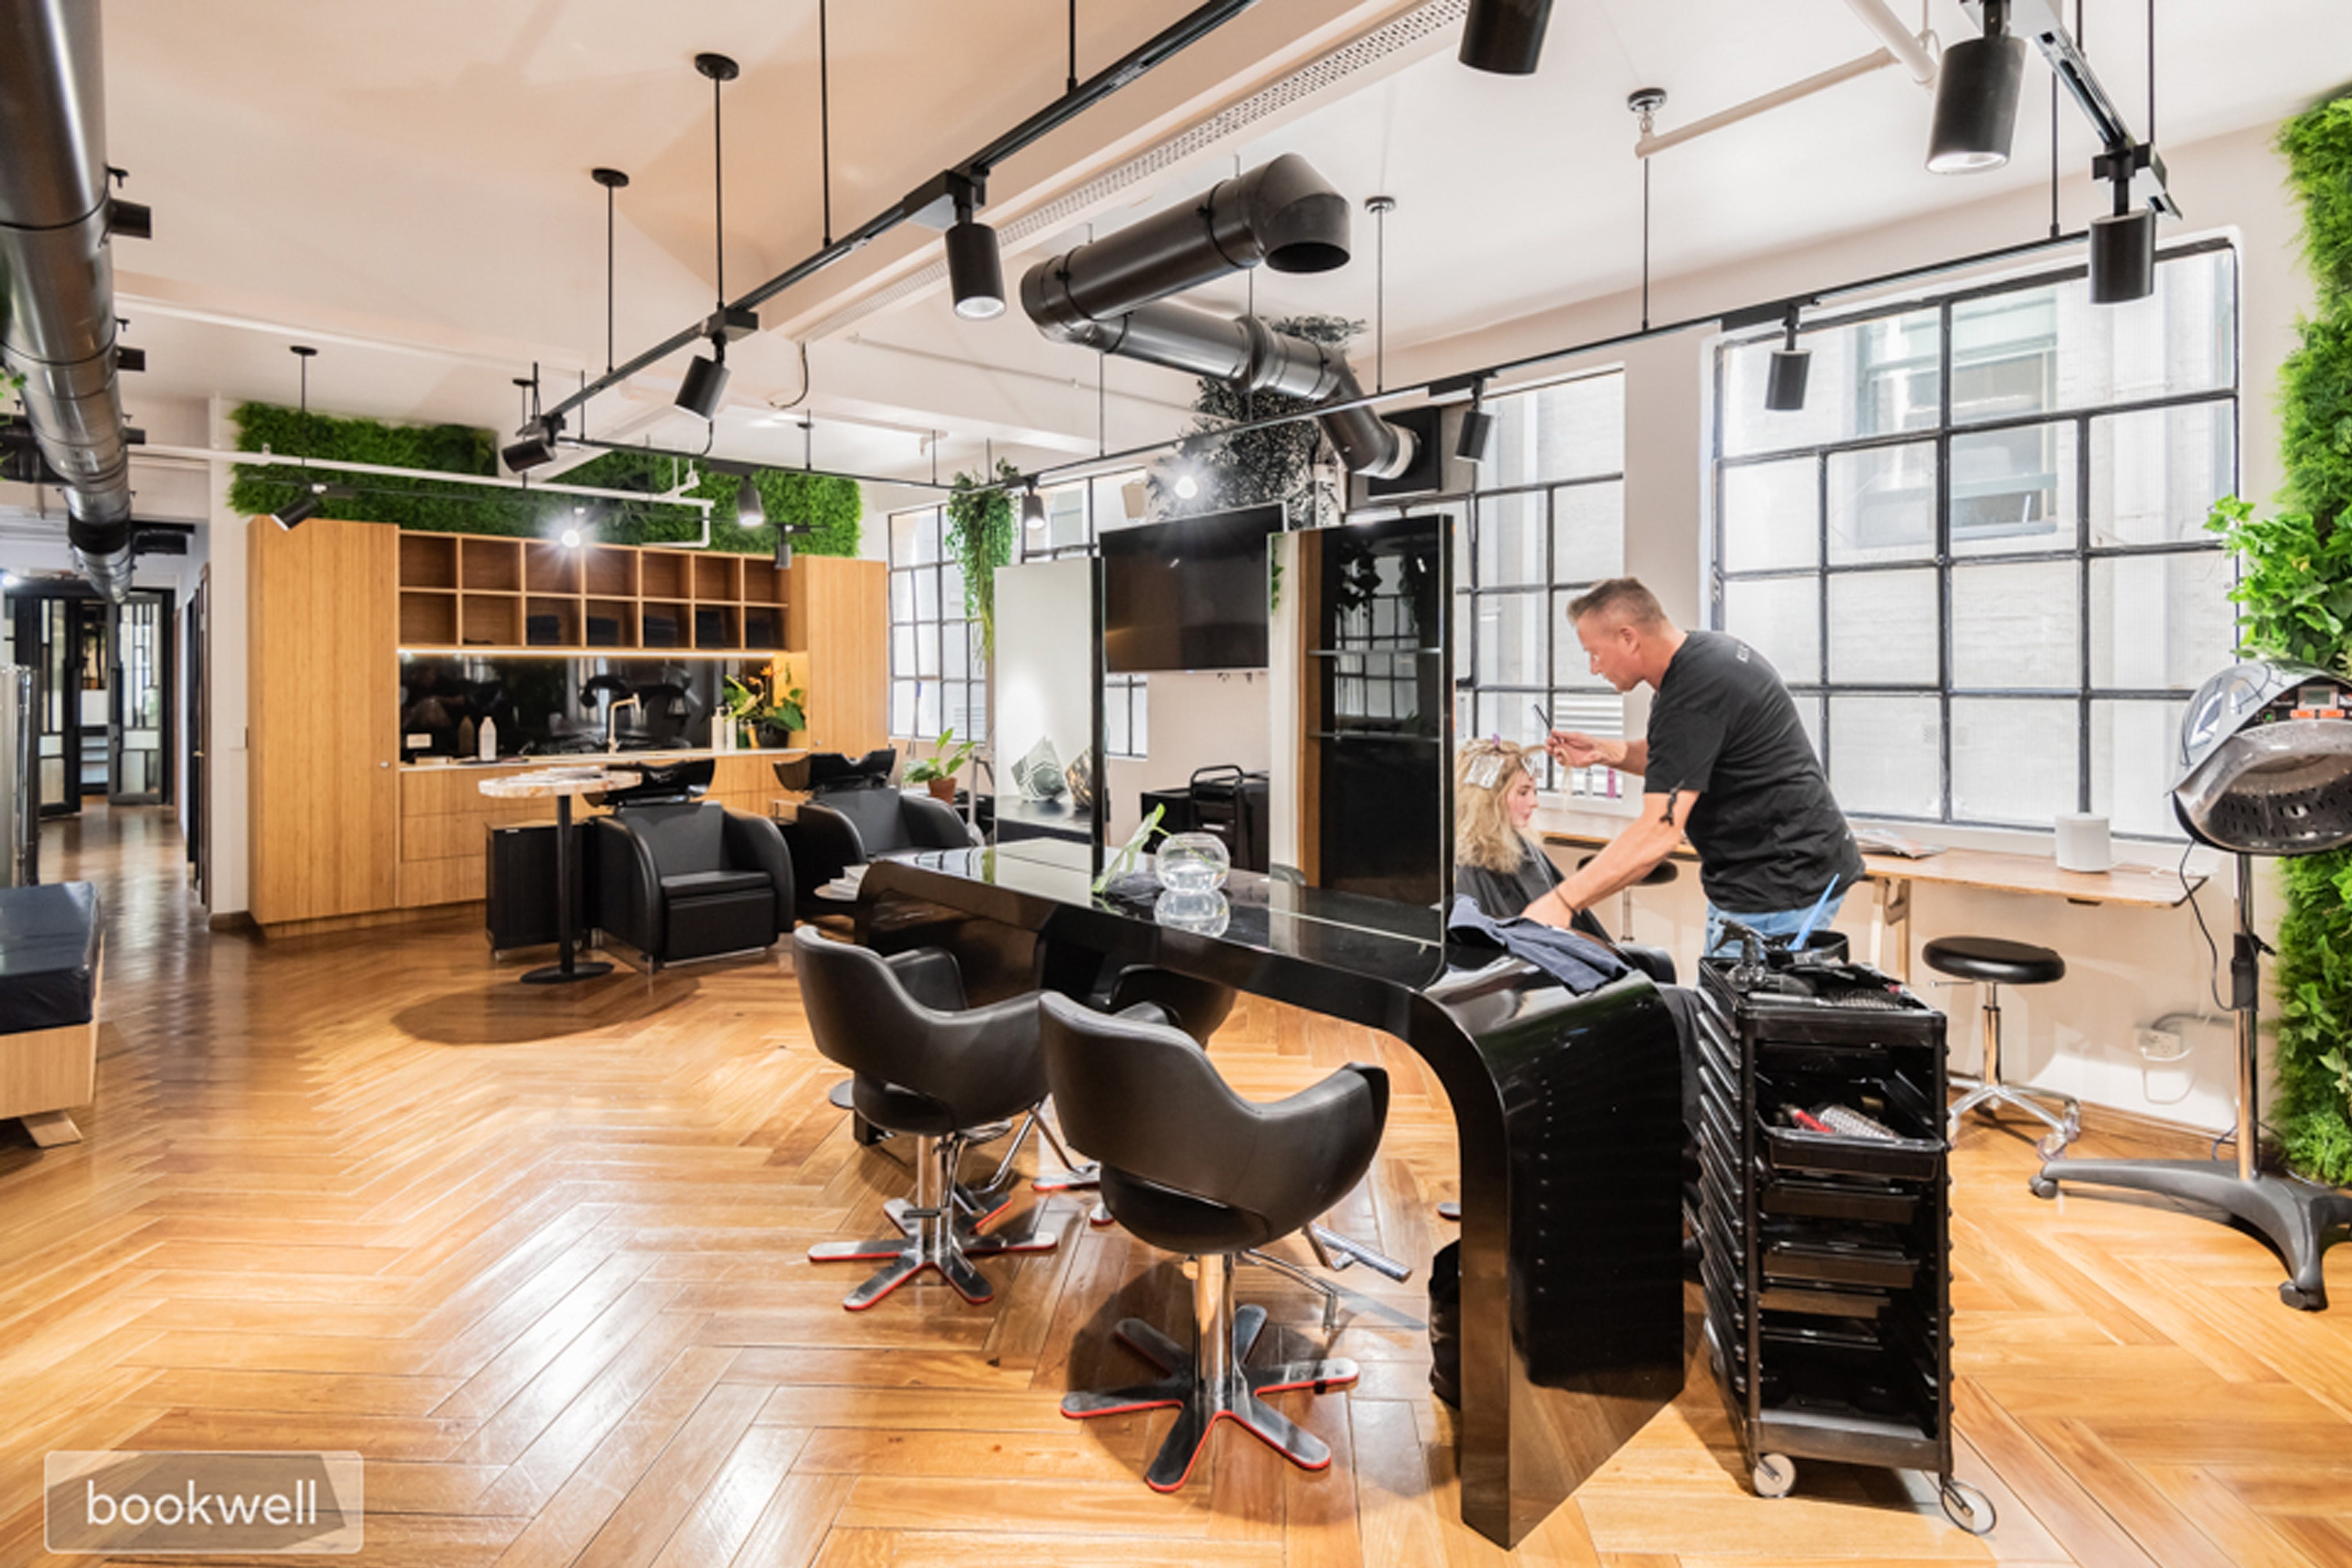 RENT A CHAIR HAIRDRESSING, multi-use area at House of TERRE A MER, image 1